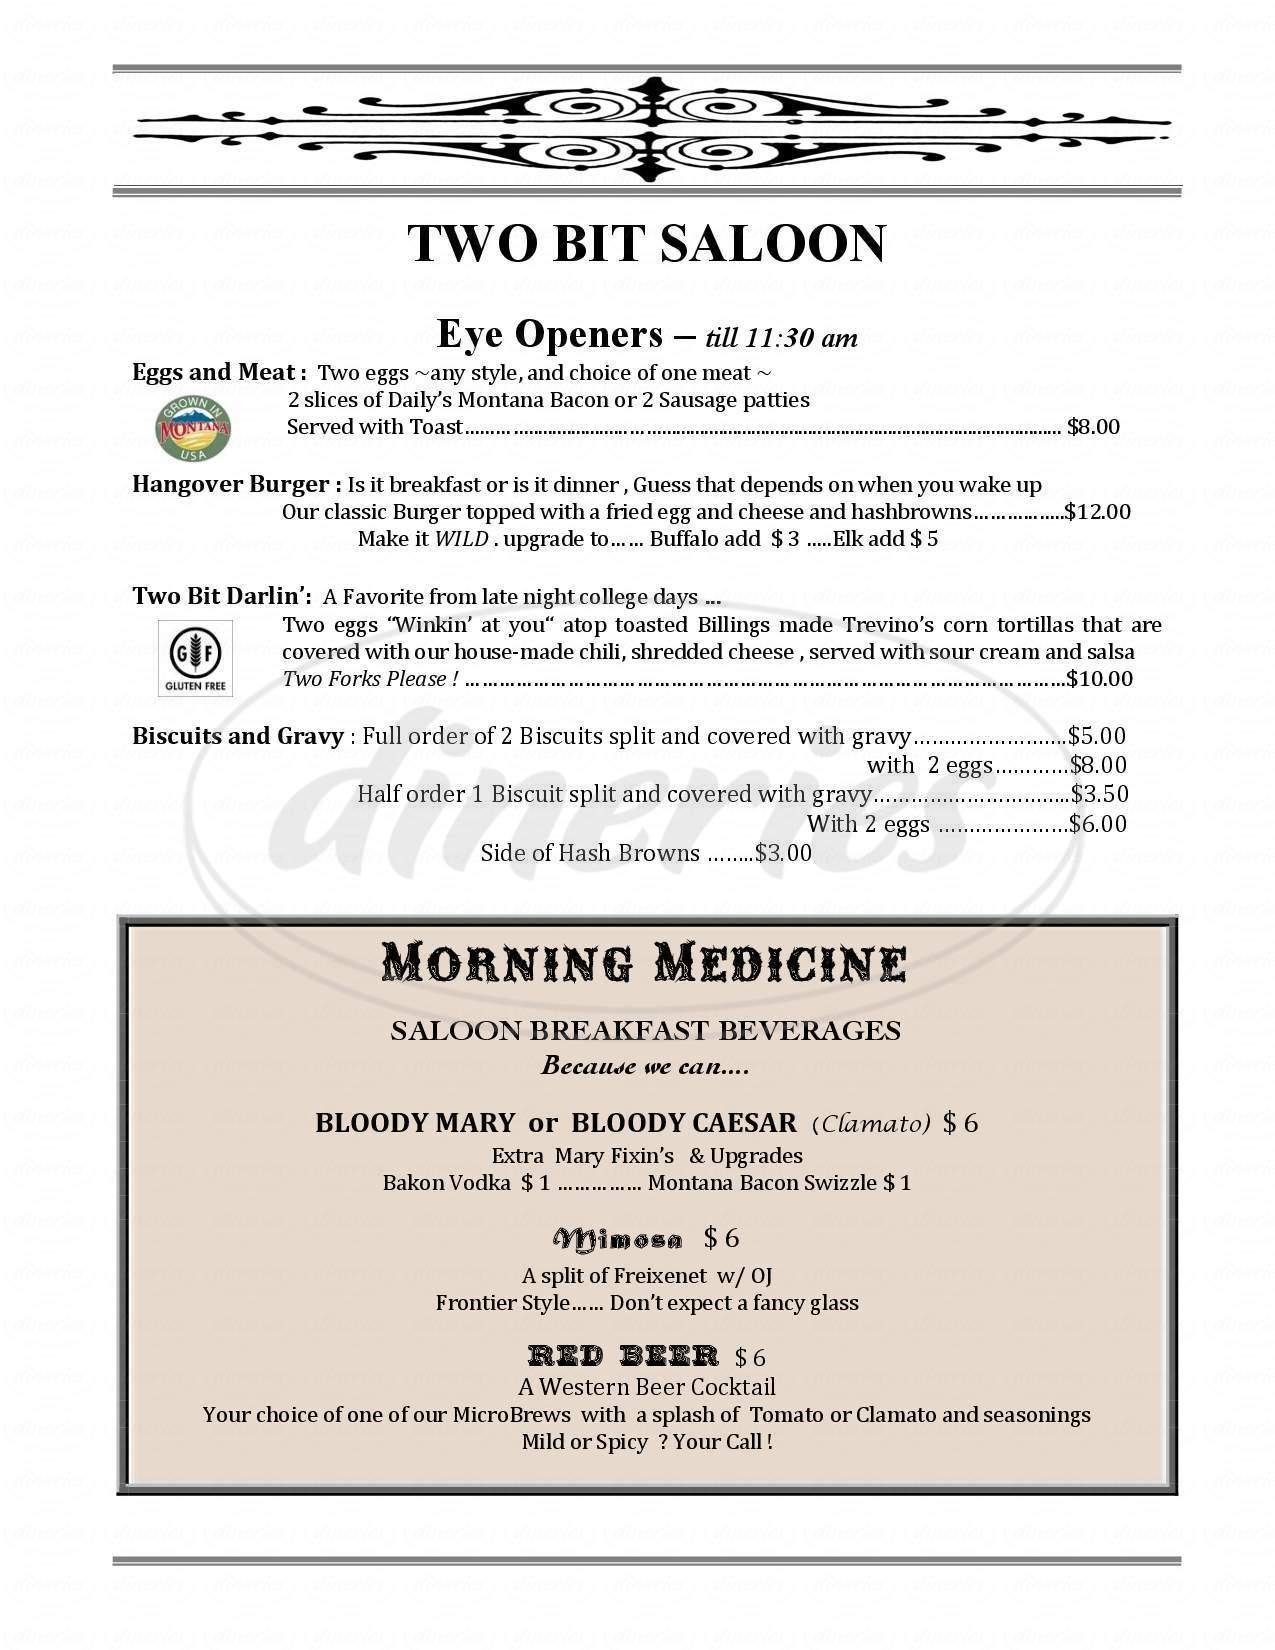 menu for Two Bit Saloon